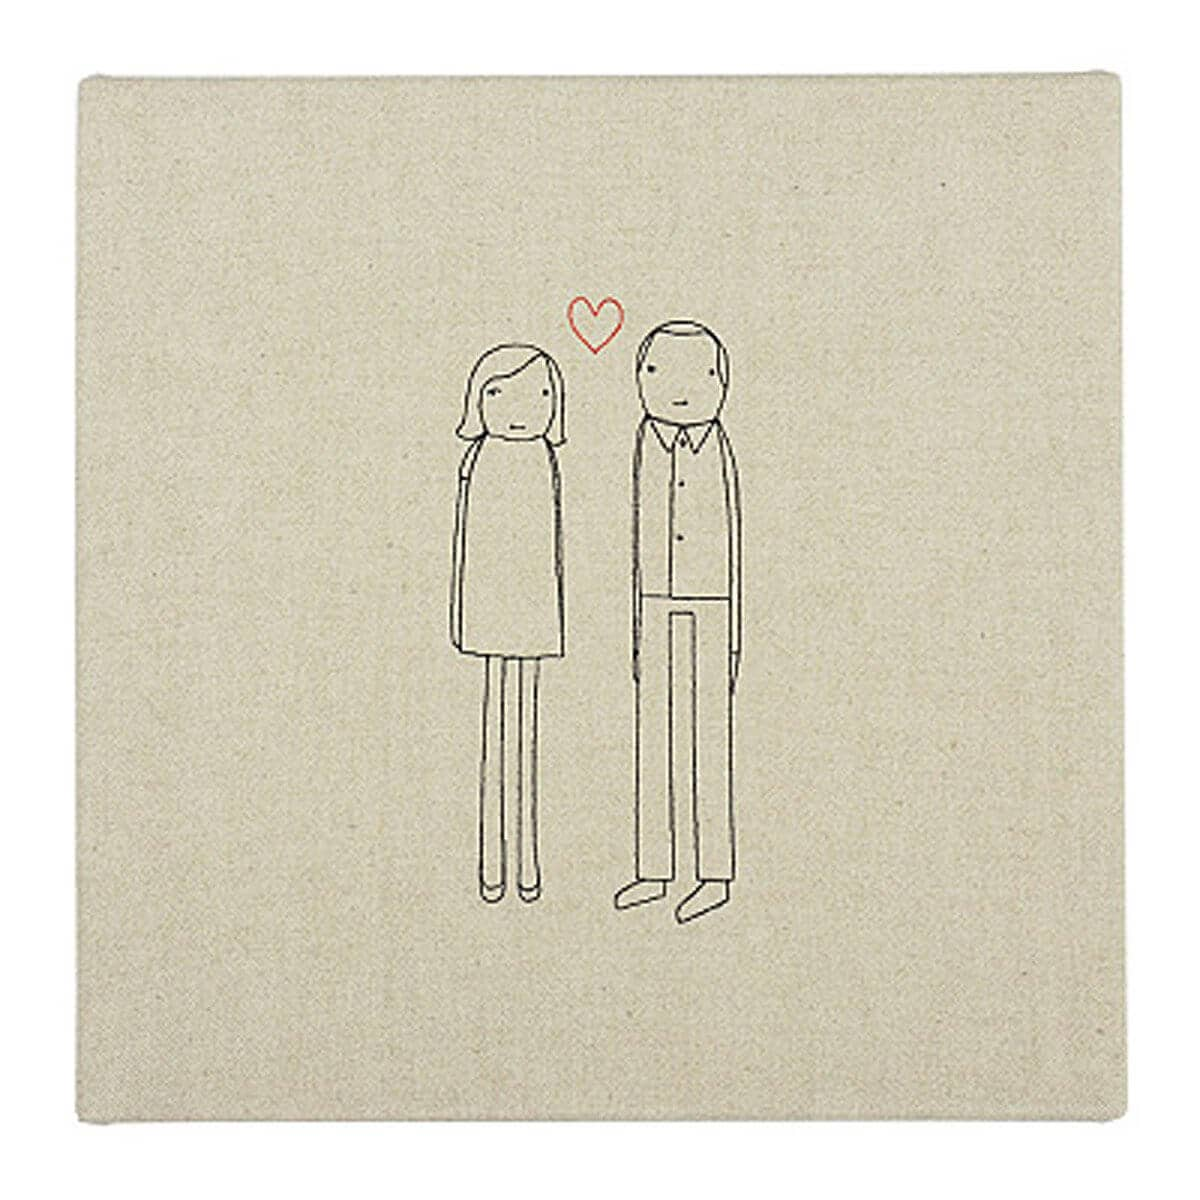 Personalized Favorite Couple Textile Art